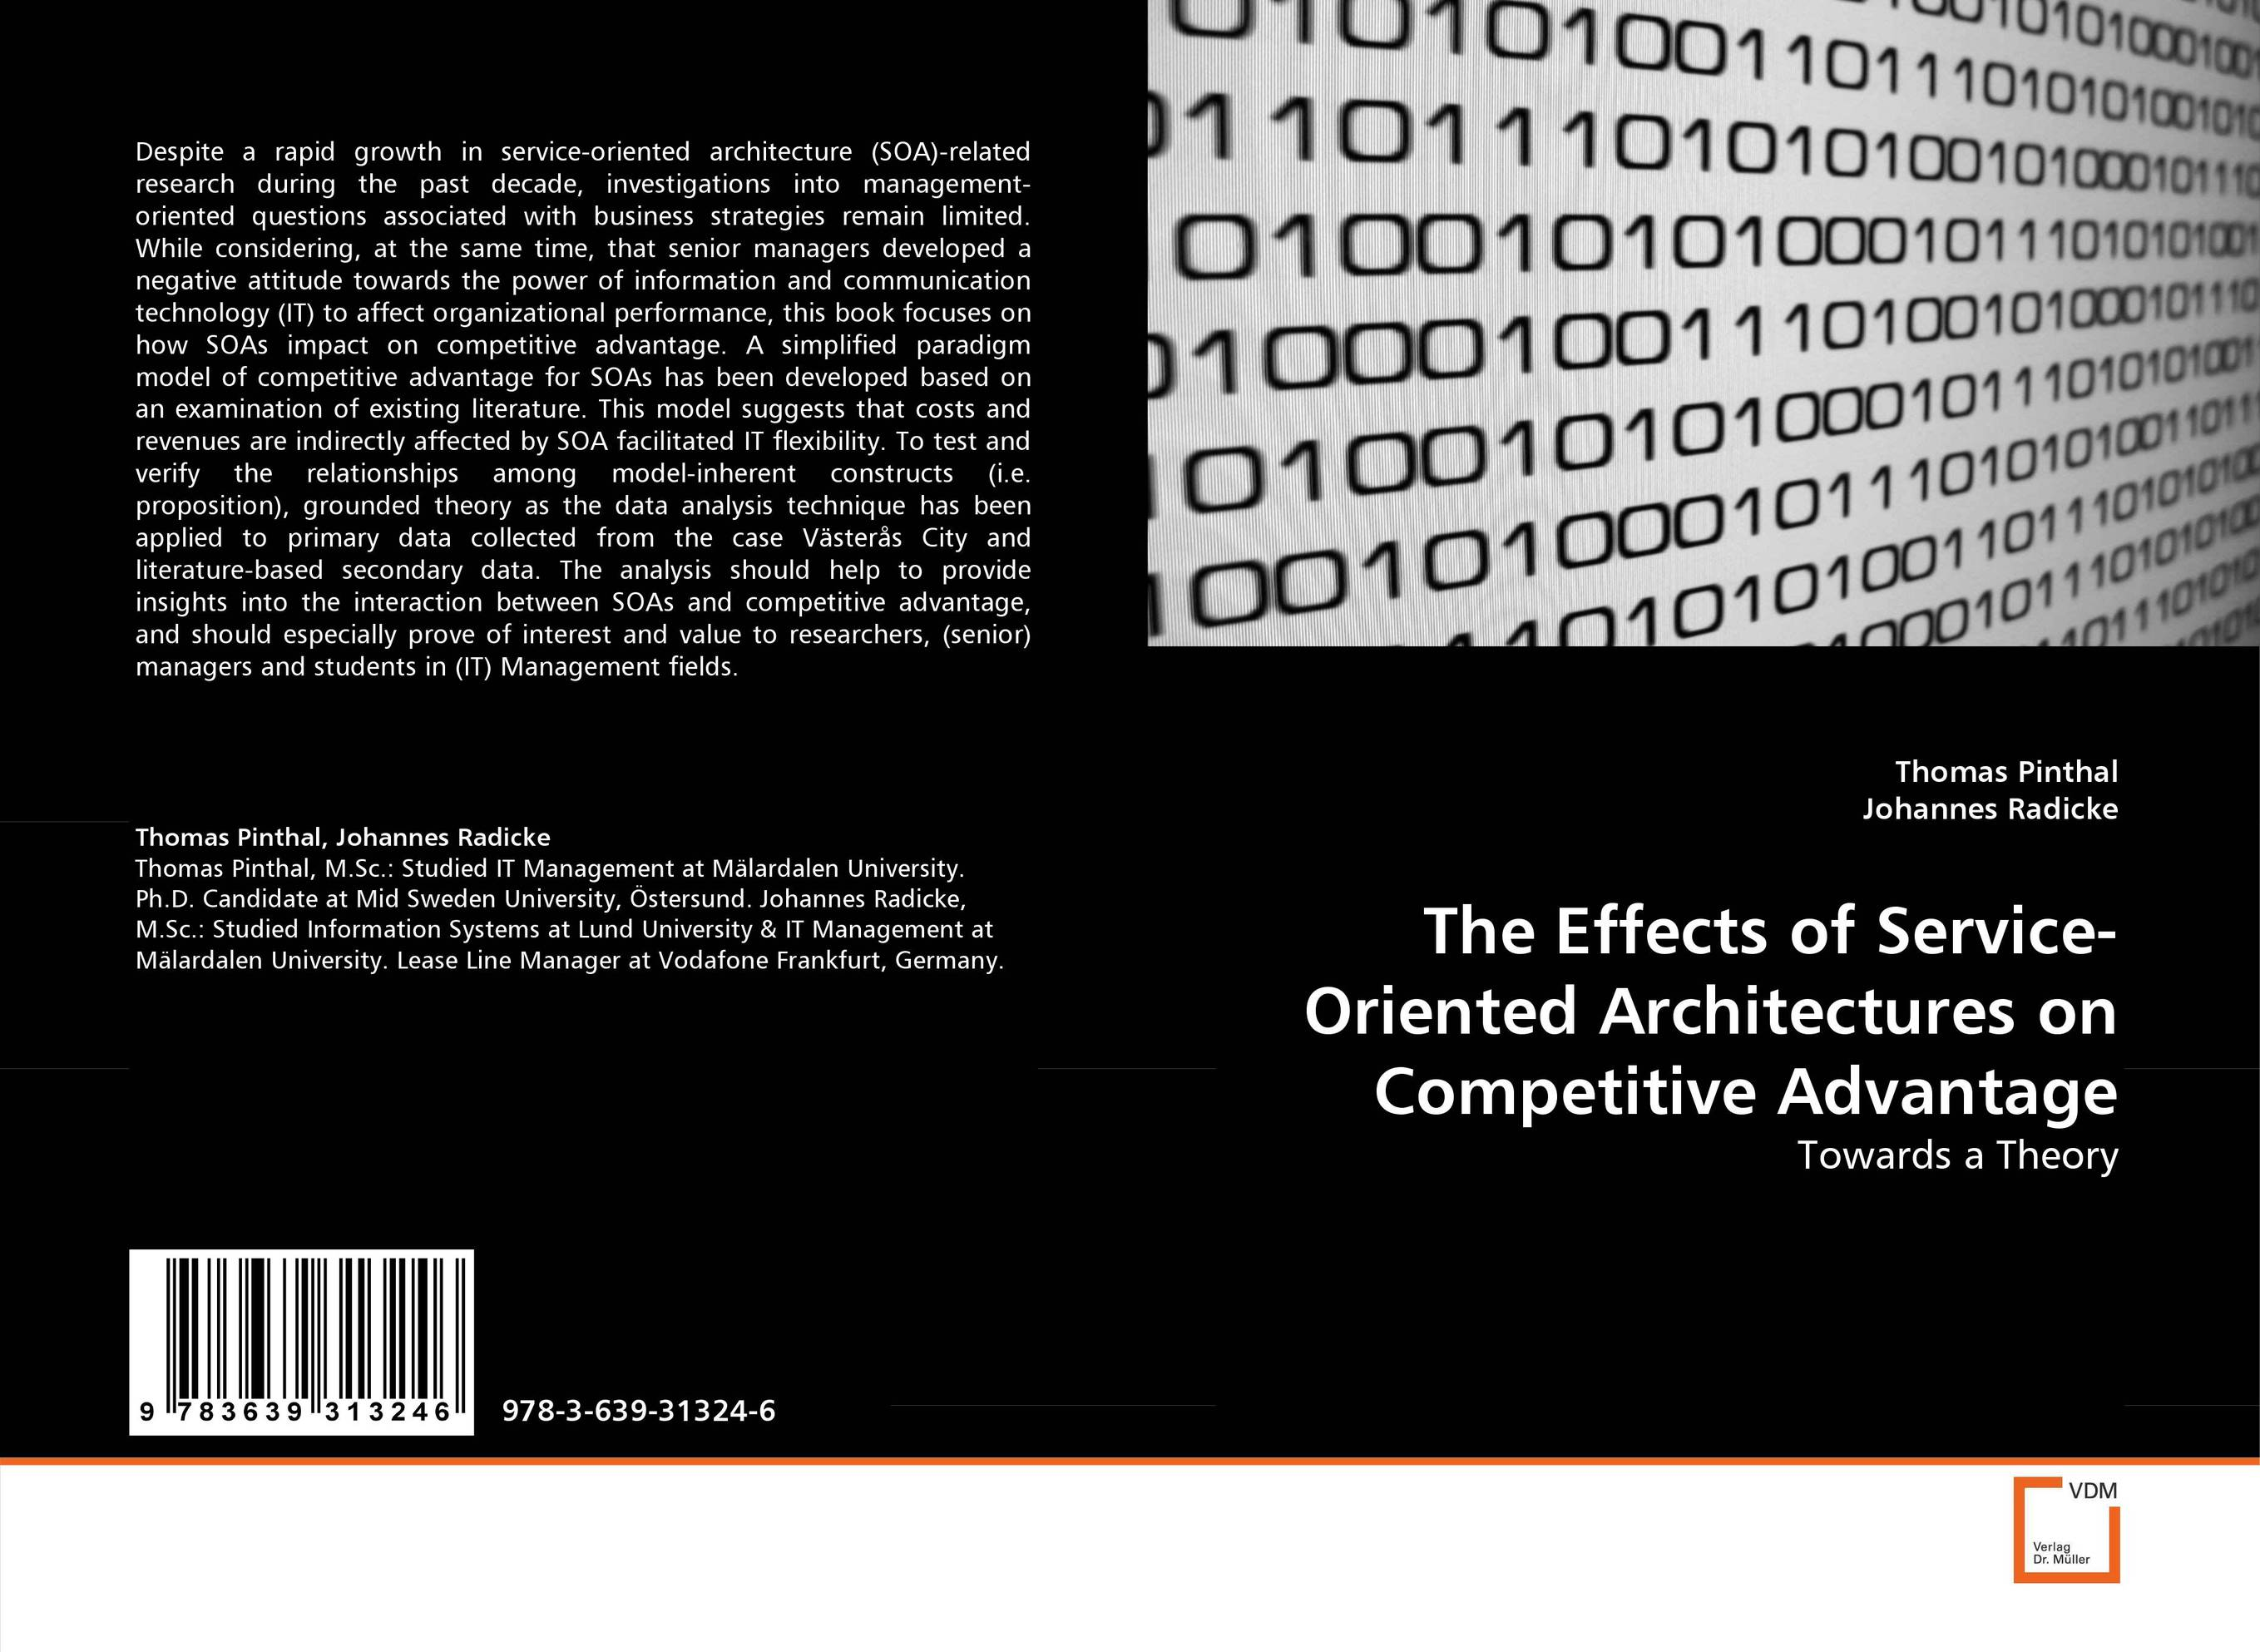 The Effects of Service-Oriented Architectures on Competitive Advantage two tier security framework for service oriented systems